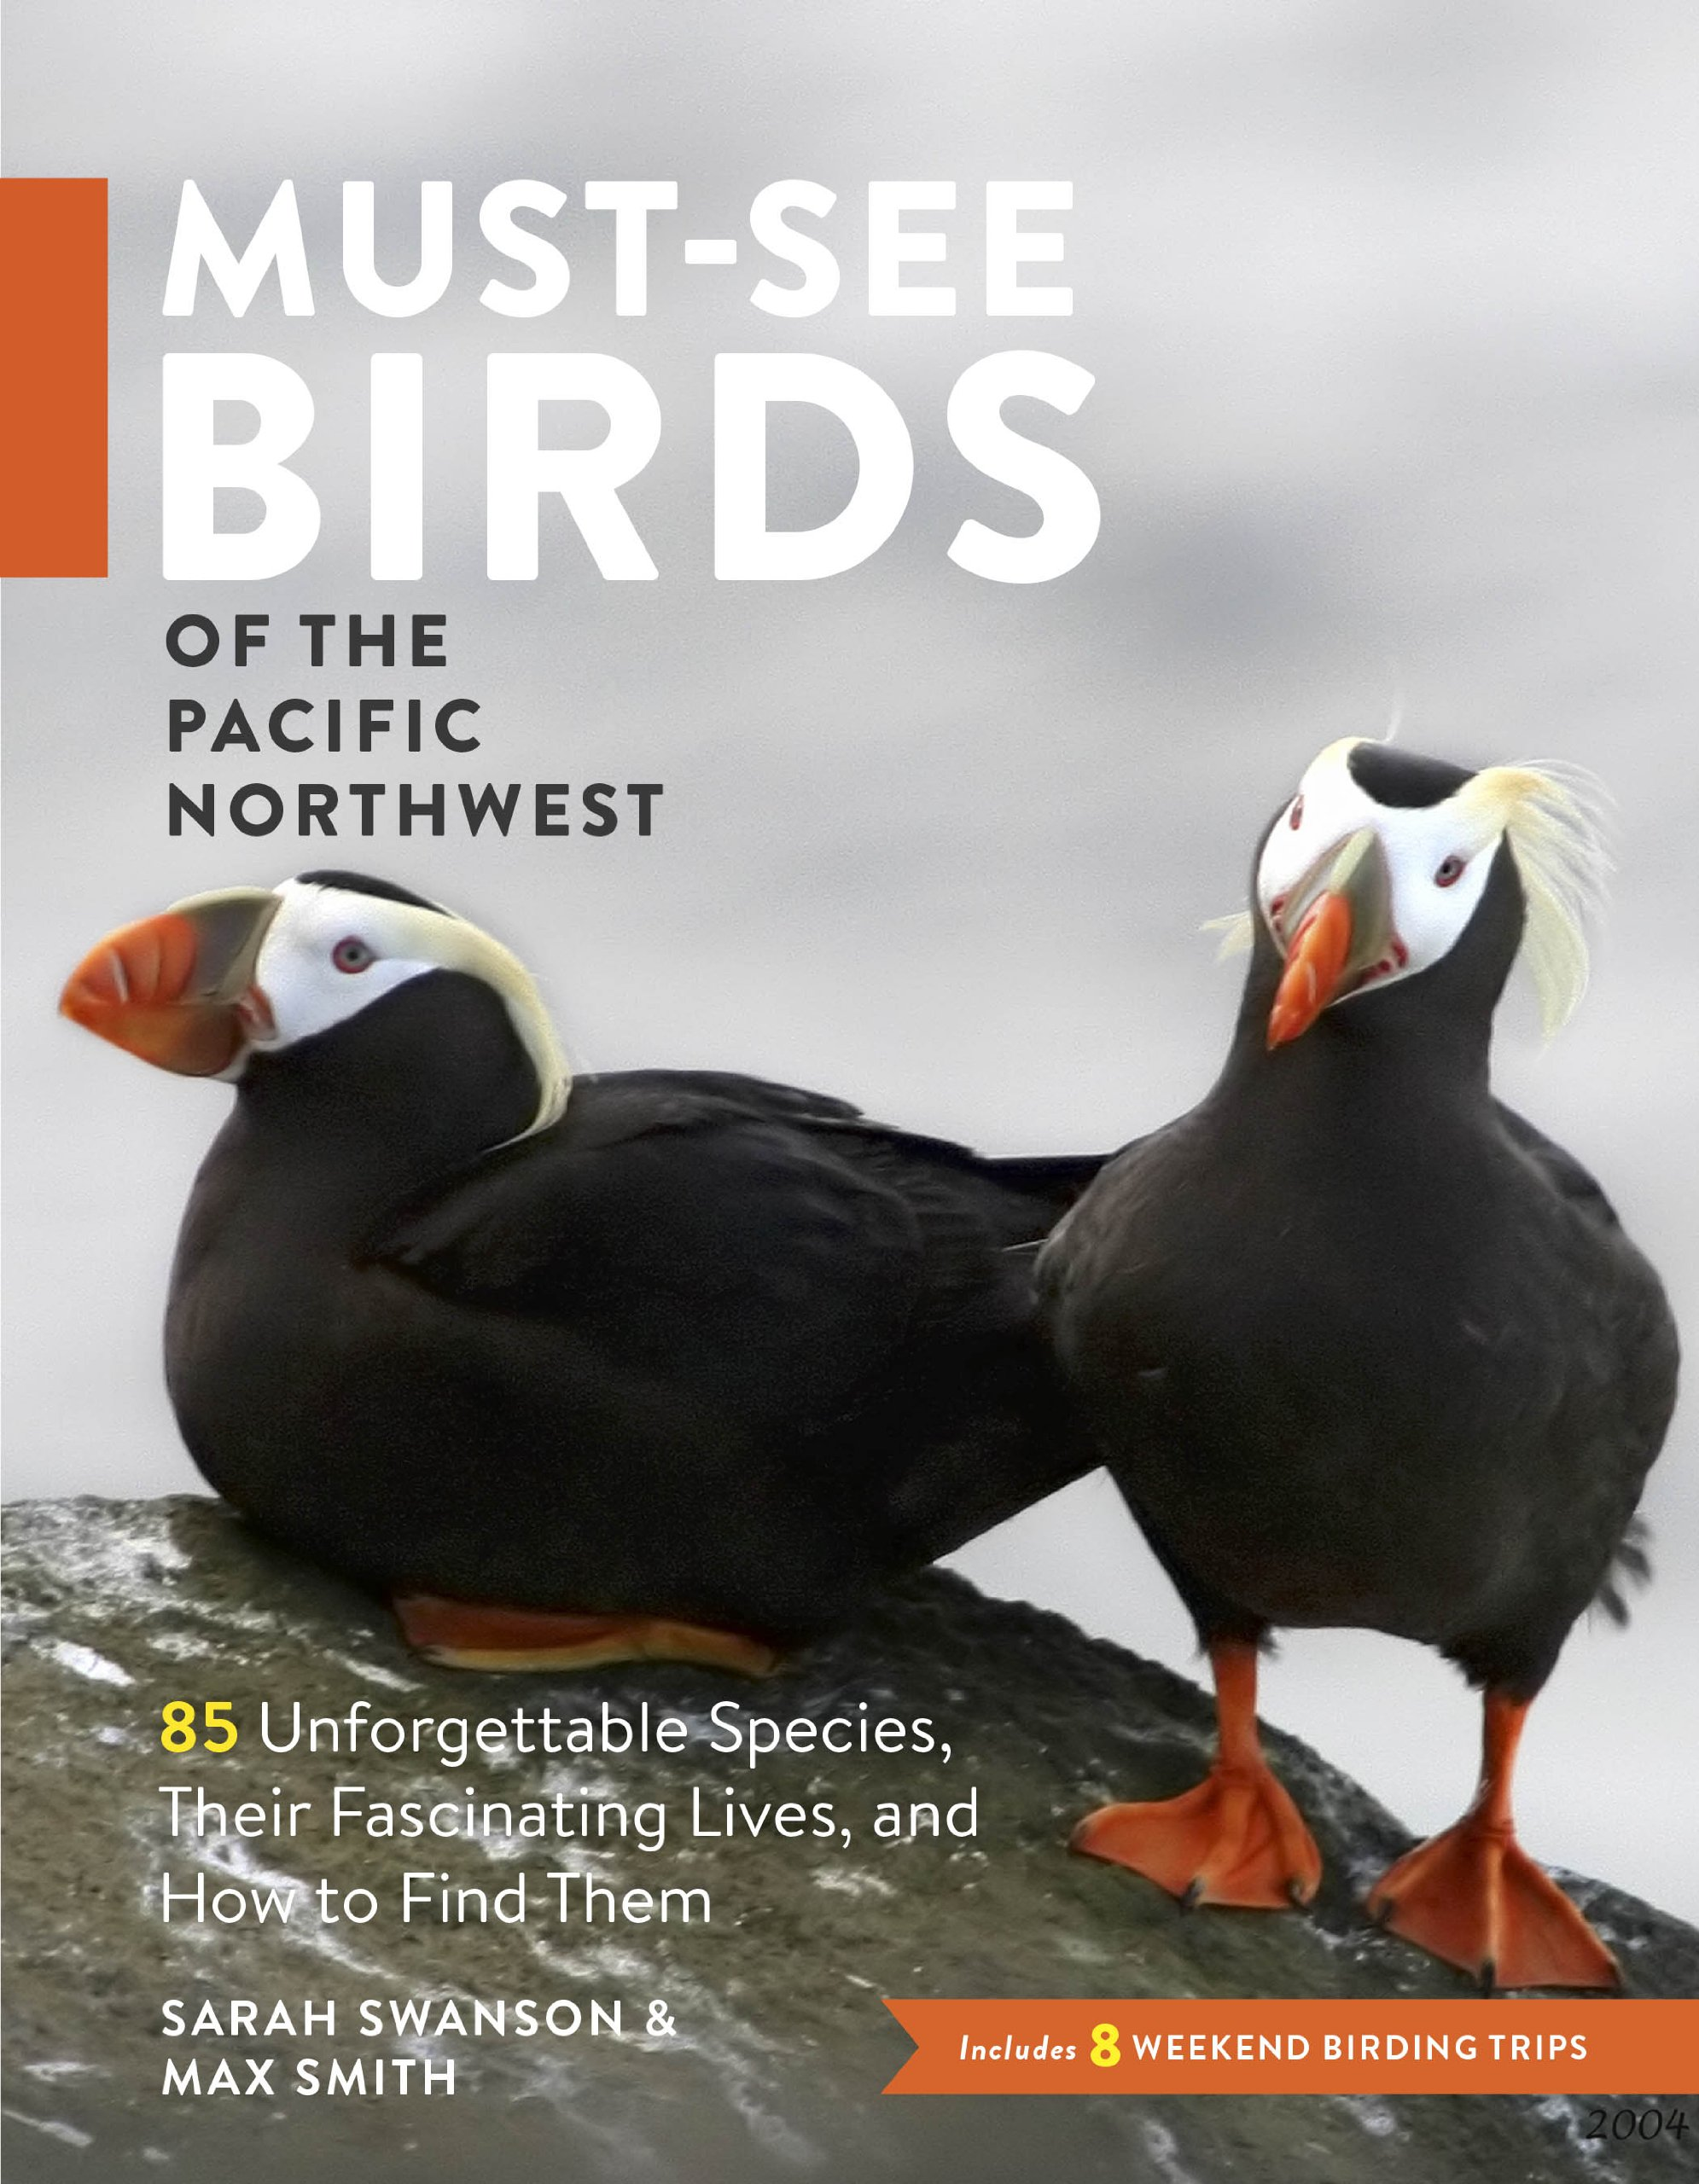 Must See Birds of the Pacific Northwest: 85 Unforgettable Species, Their Fascinating Lives, and How to Find Them